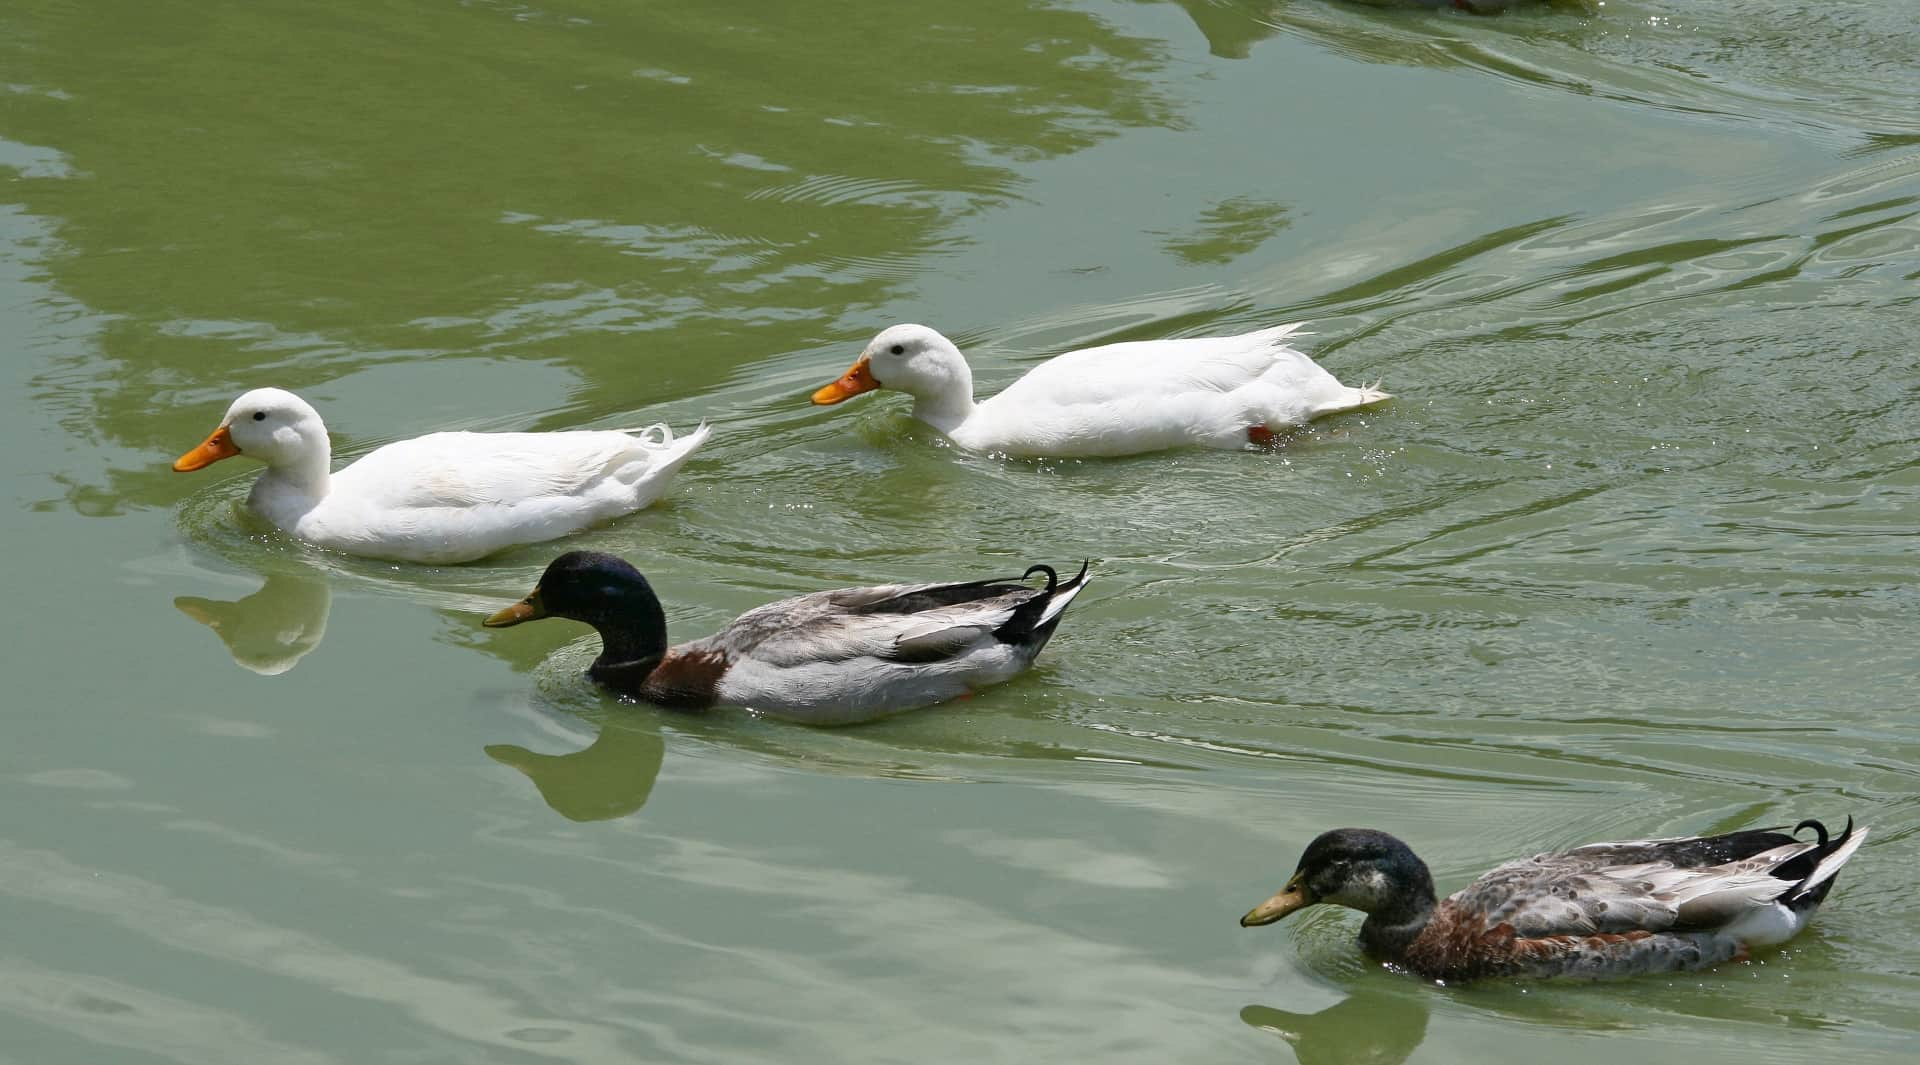 Where you found ducks in the water?